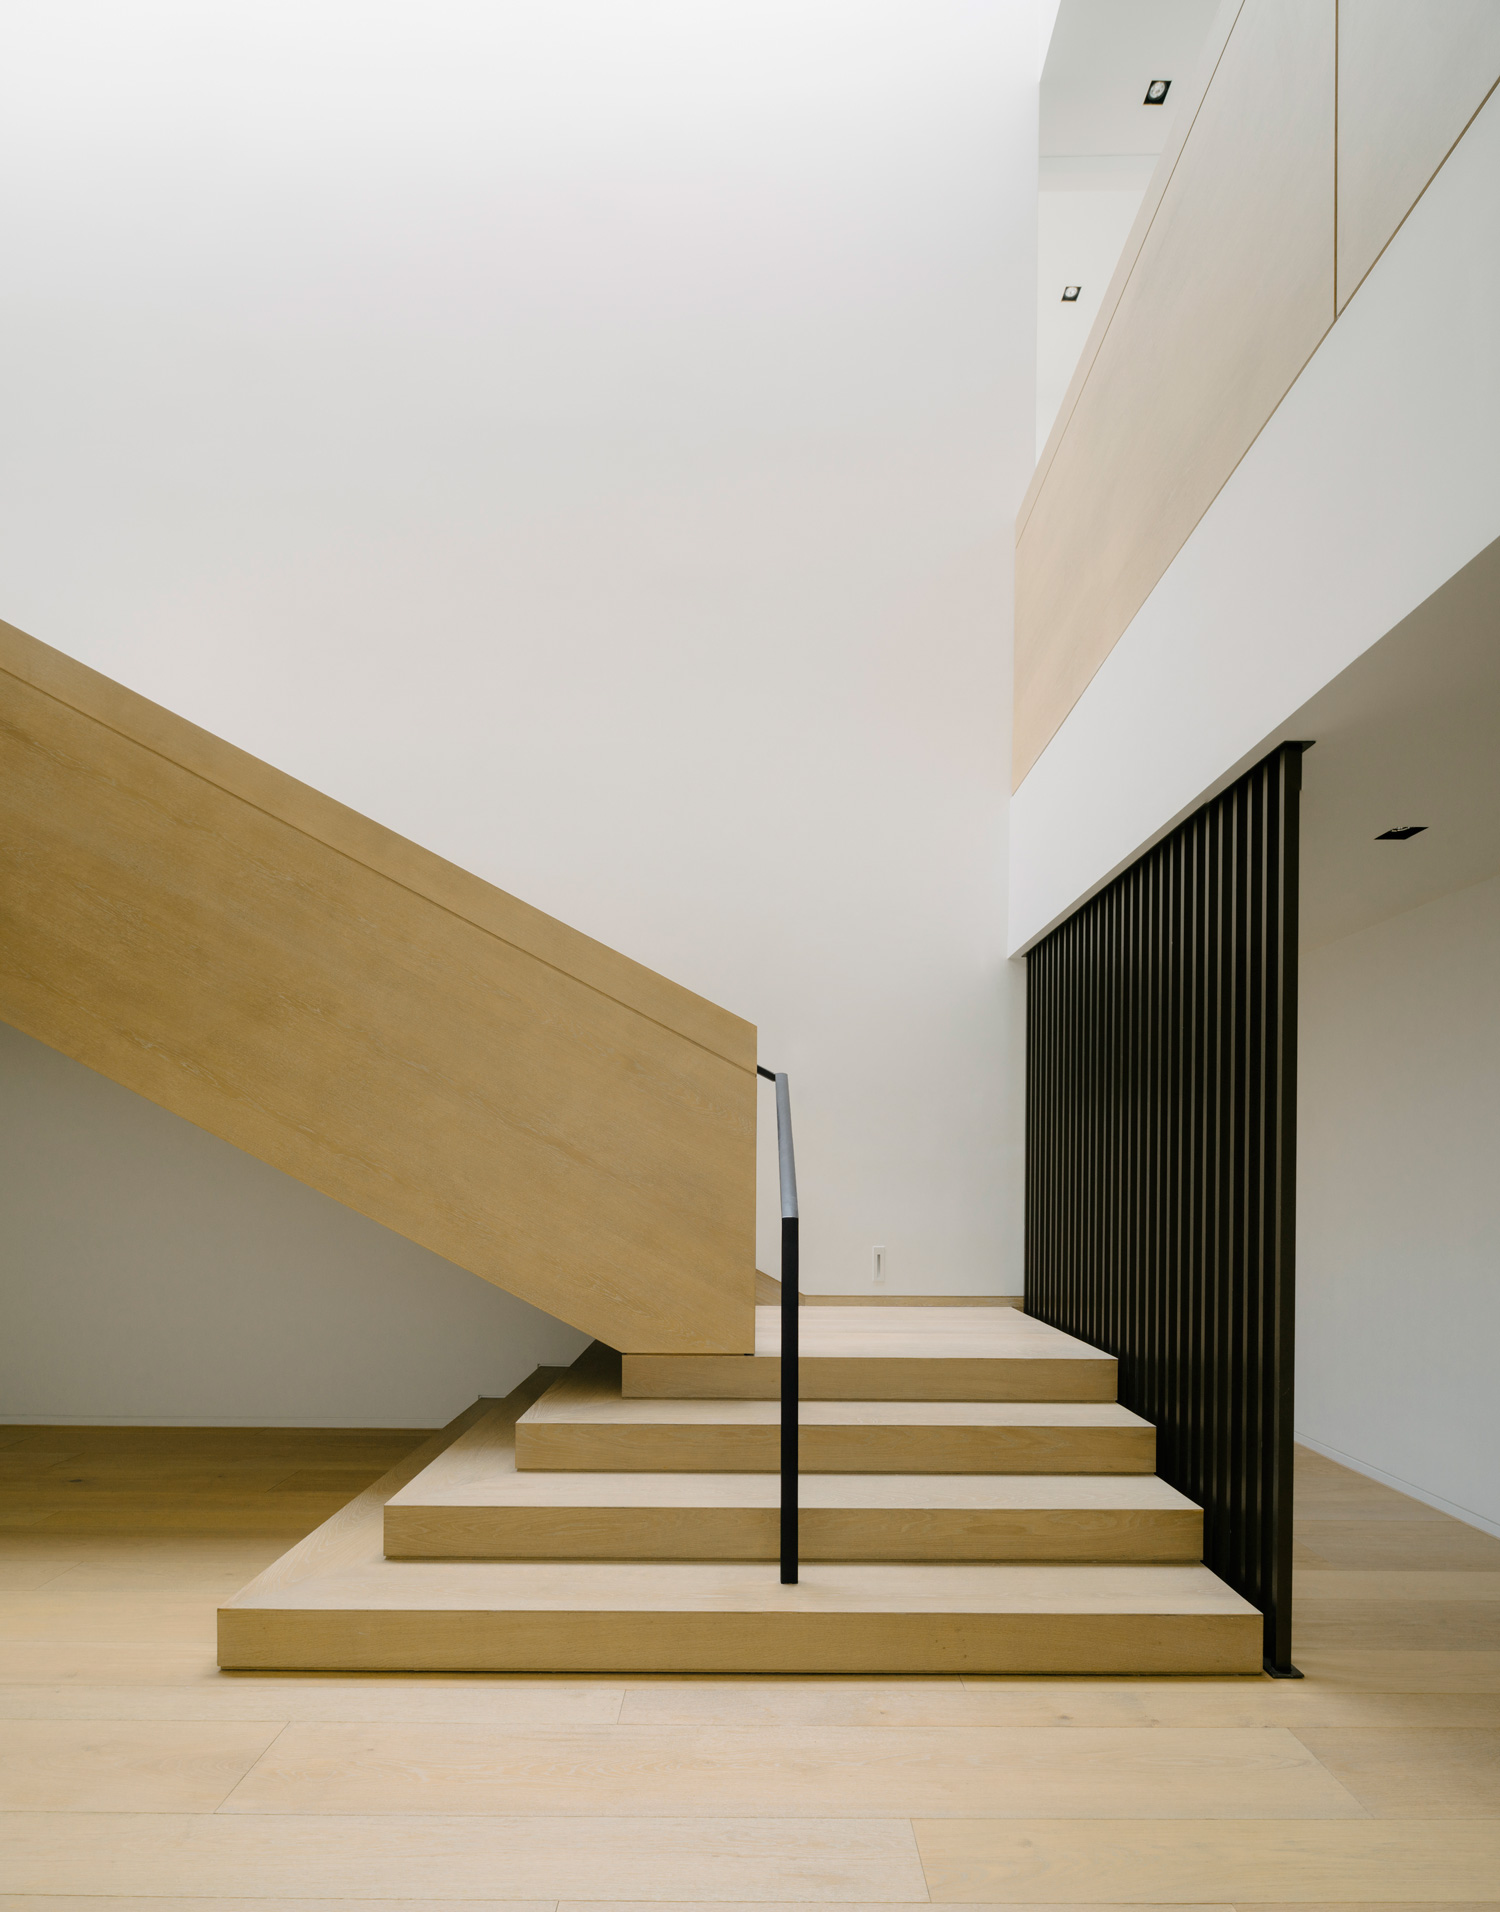 The Nova Building by Flanagan Lawrence | Yellowtrace